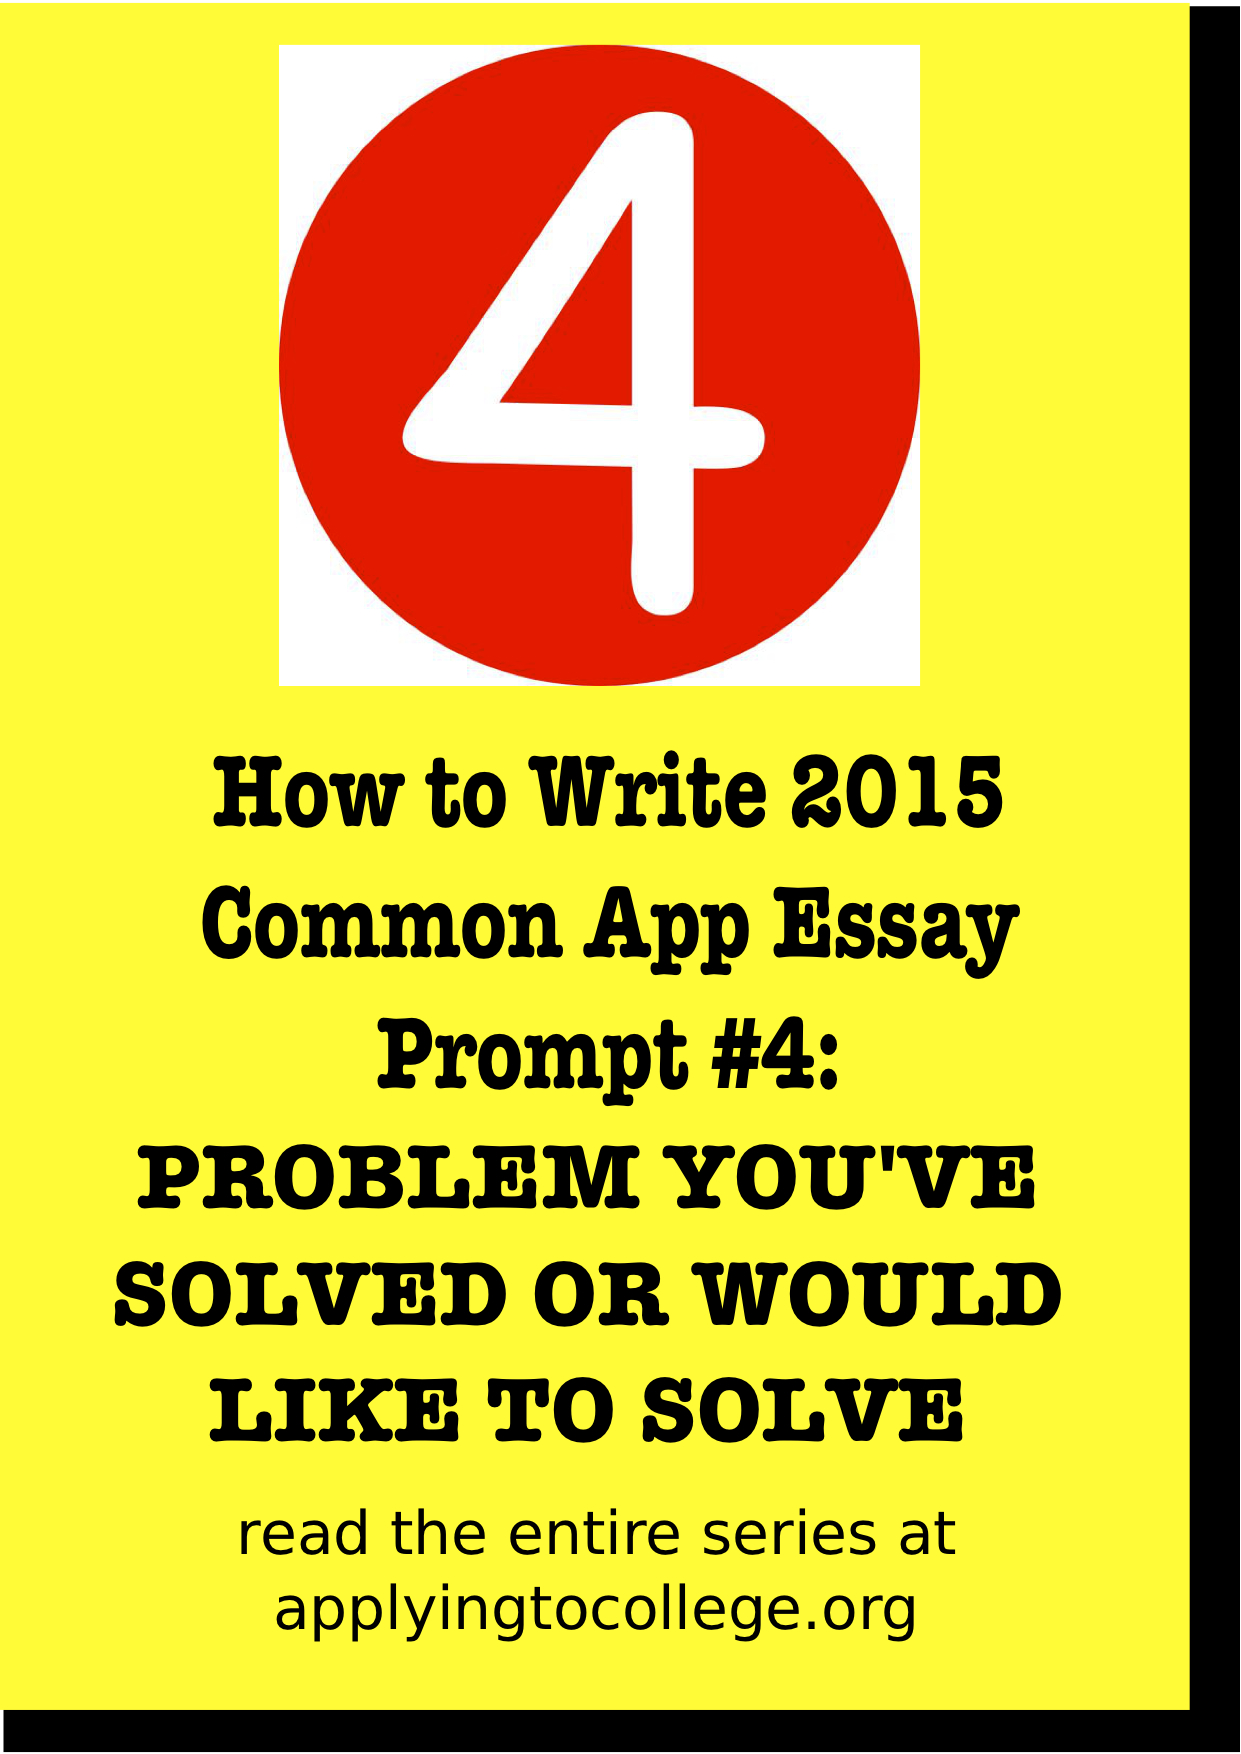 Comments Off on Common app essay help Jan 18, 2015 | Services